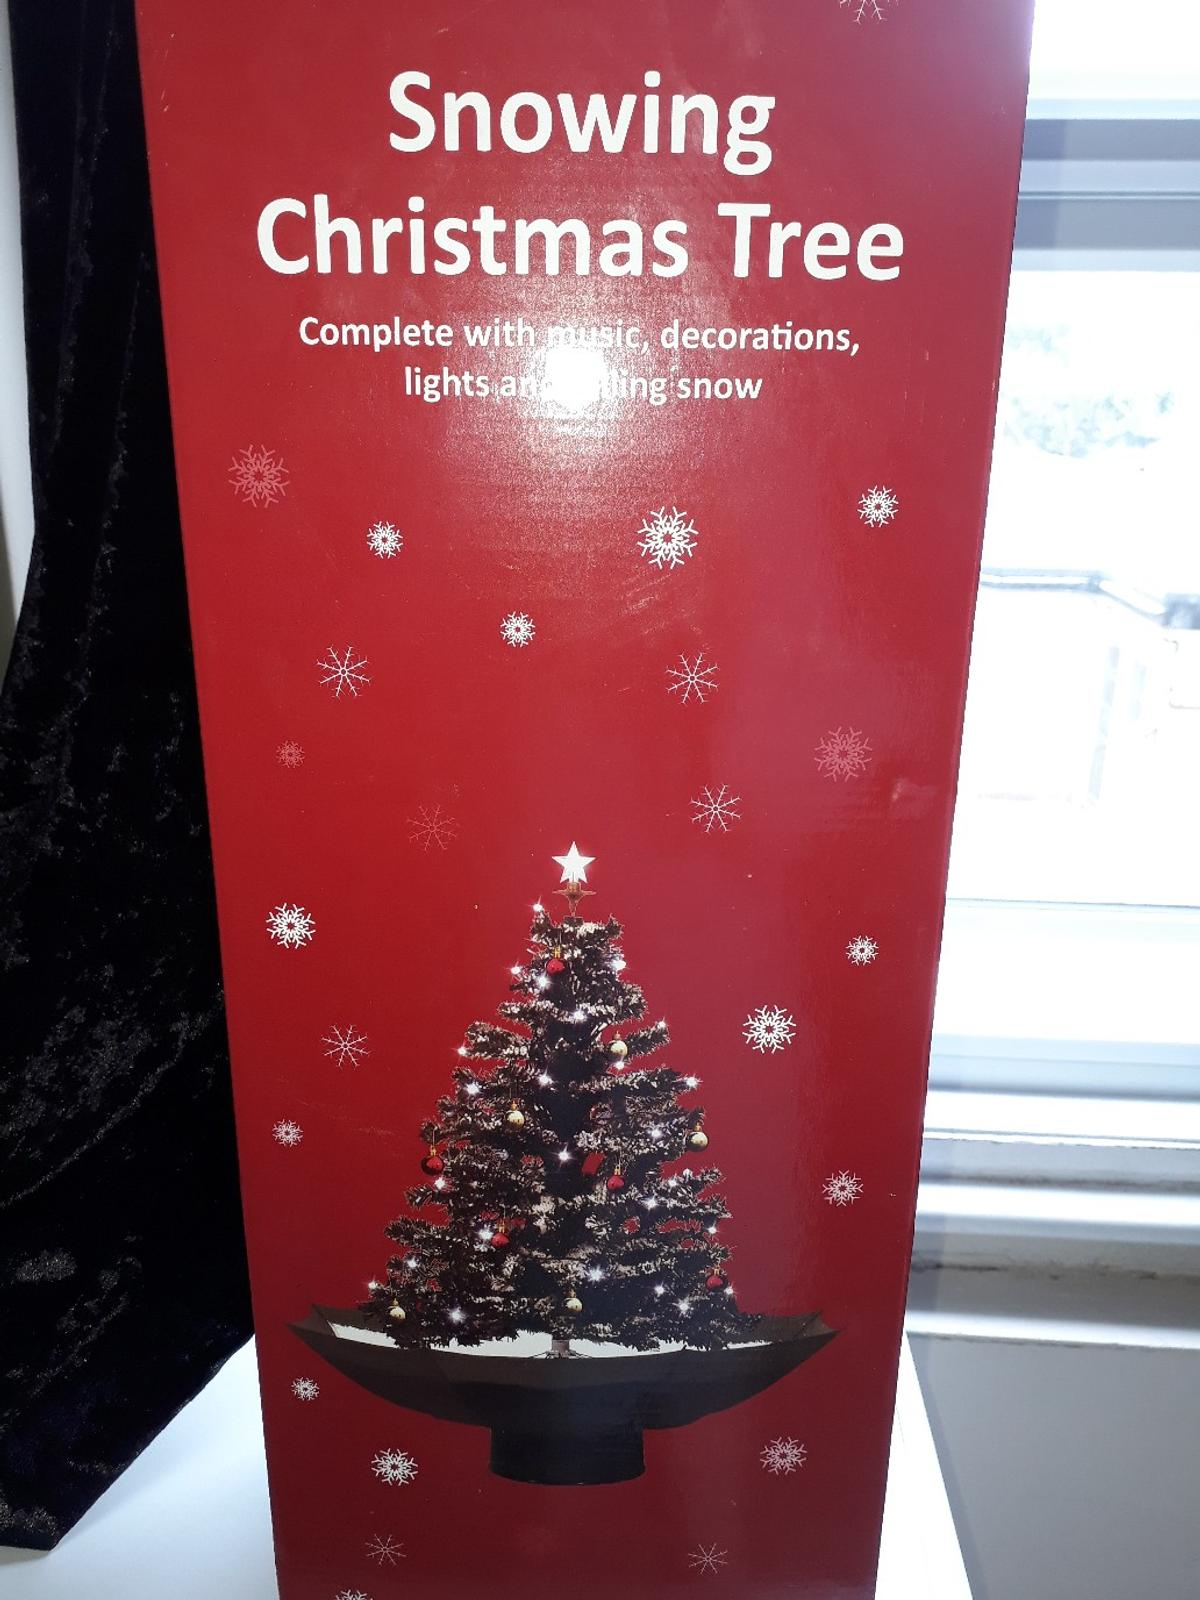 Snowing Christmas Lights.Snowing Christmas Tree In Tn39 Rother For 15 00 For Sale